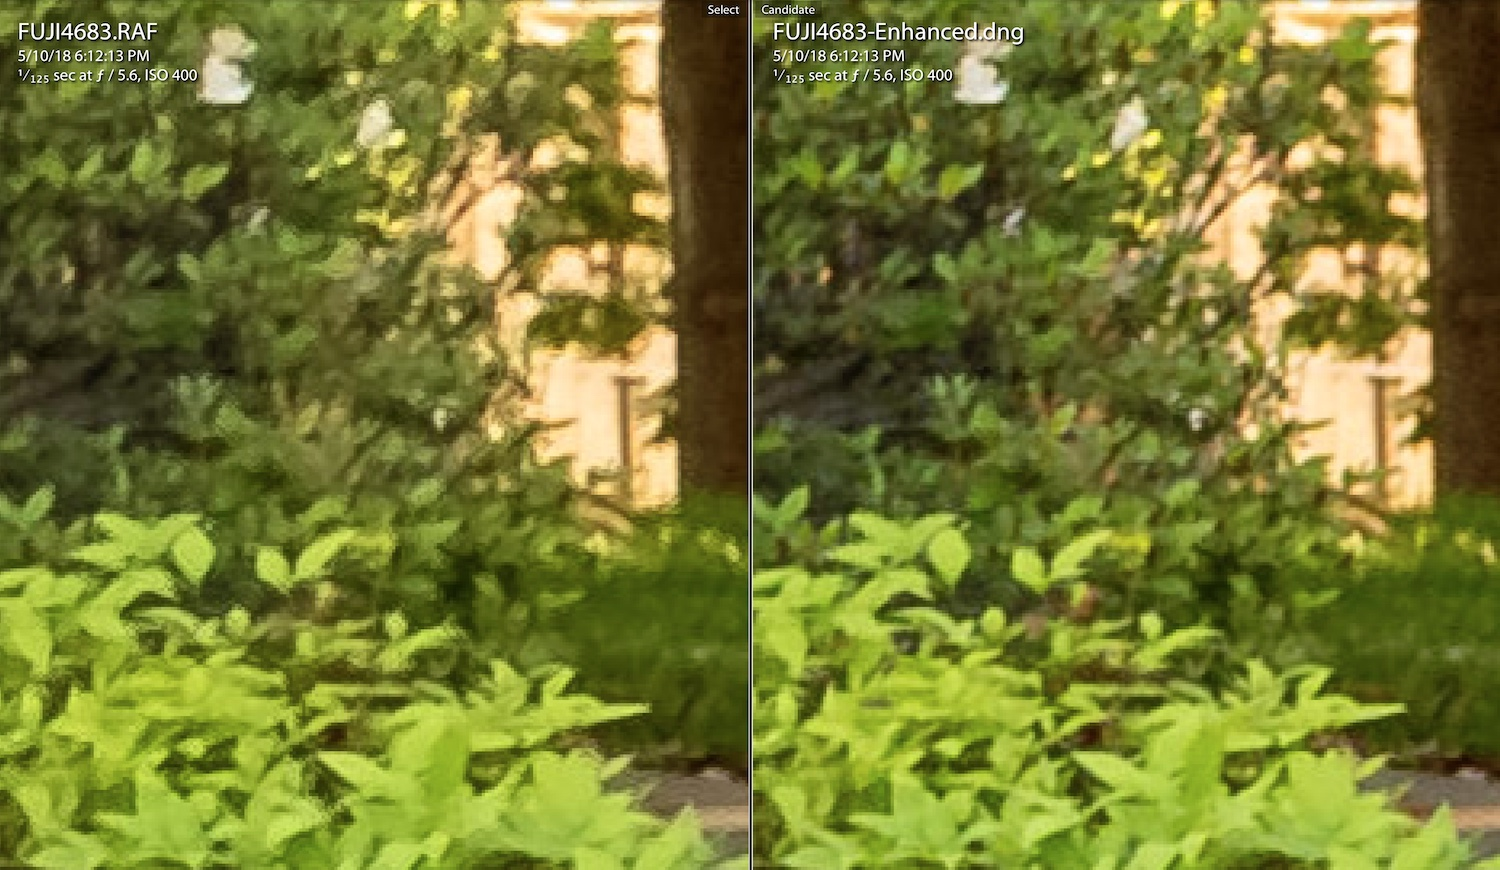 Image: Original on the left, Enhanced on the right.